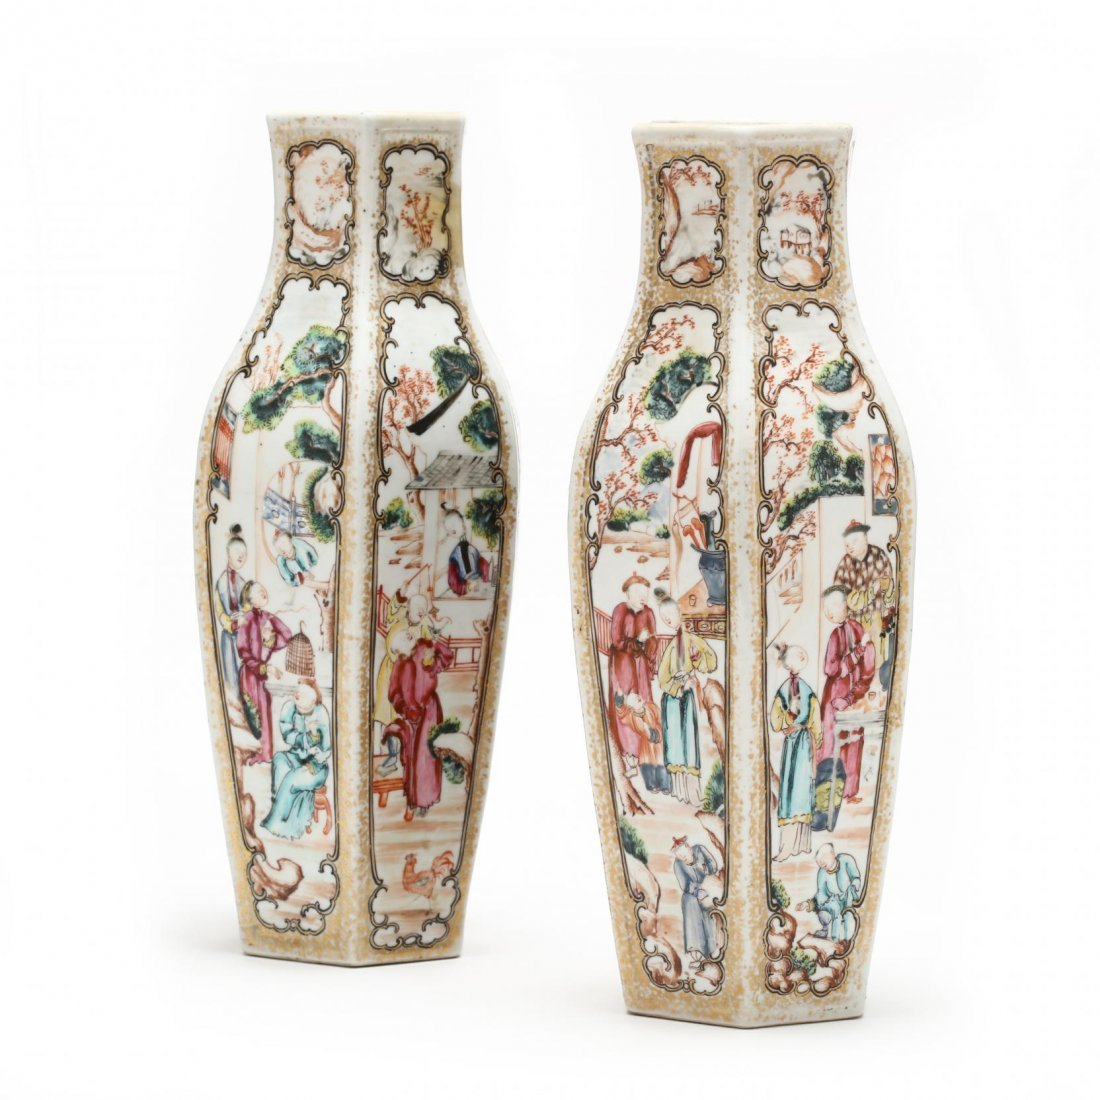 Pair of Chinese Export Vases